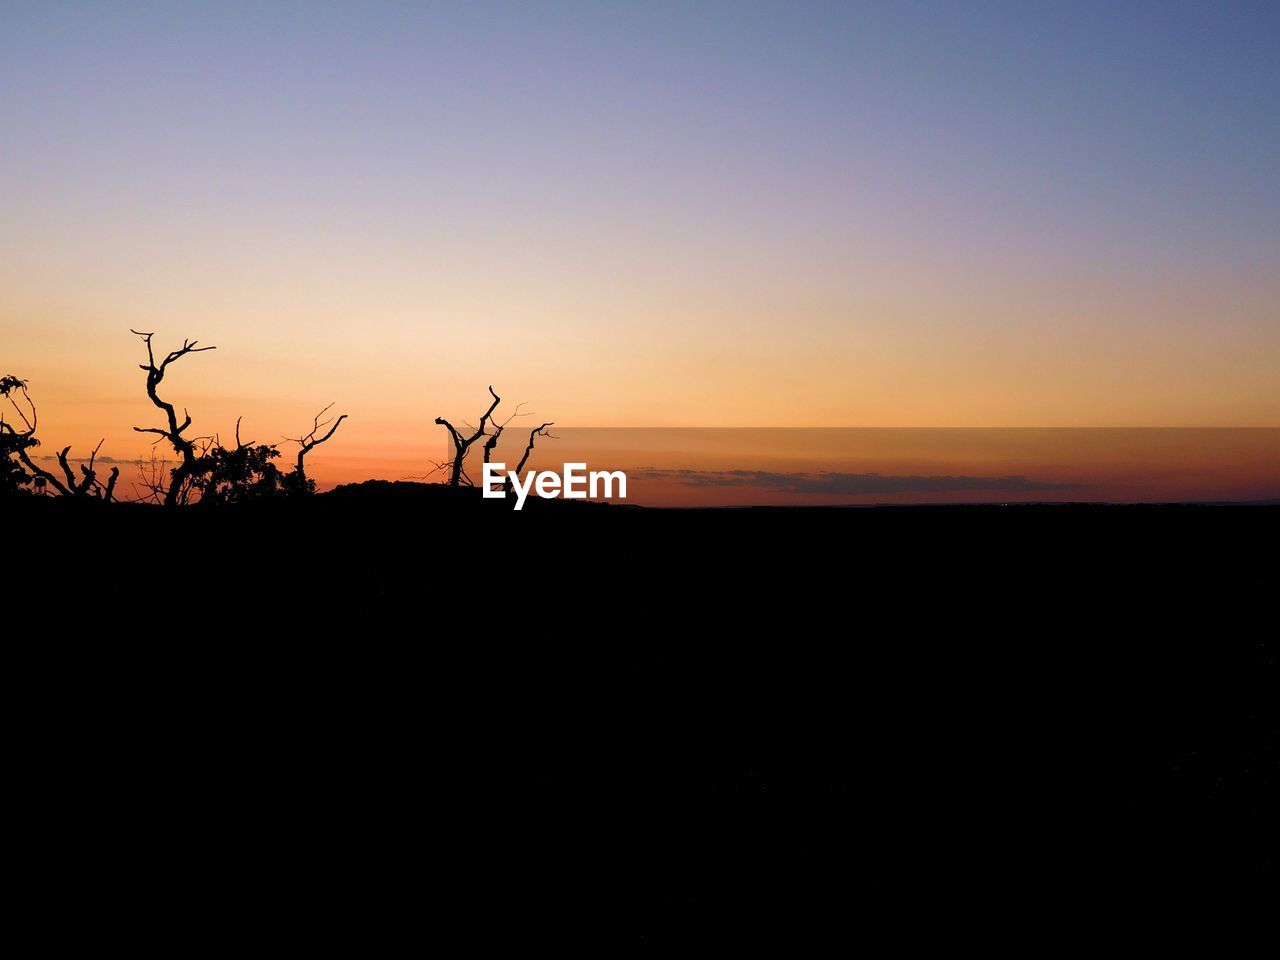 sunset, nature, silhouette, tranquil scene, beauty in nature, scenics, tranquility, landscape, copy space, sky, outdoors, no people, clear sky, tree, plant, day